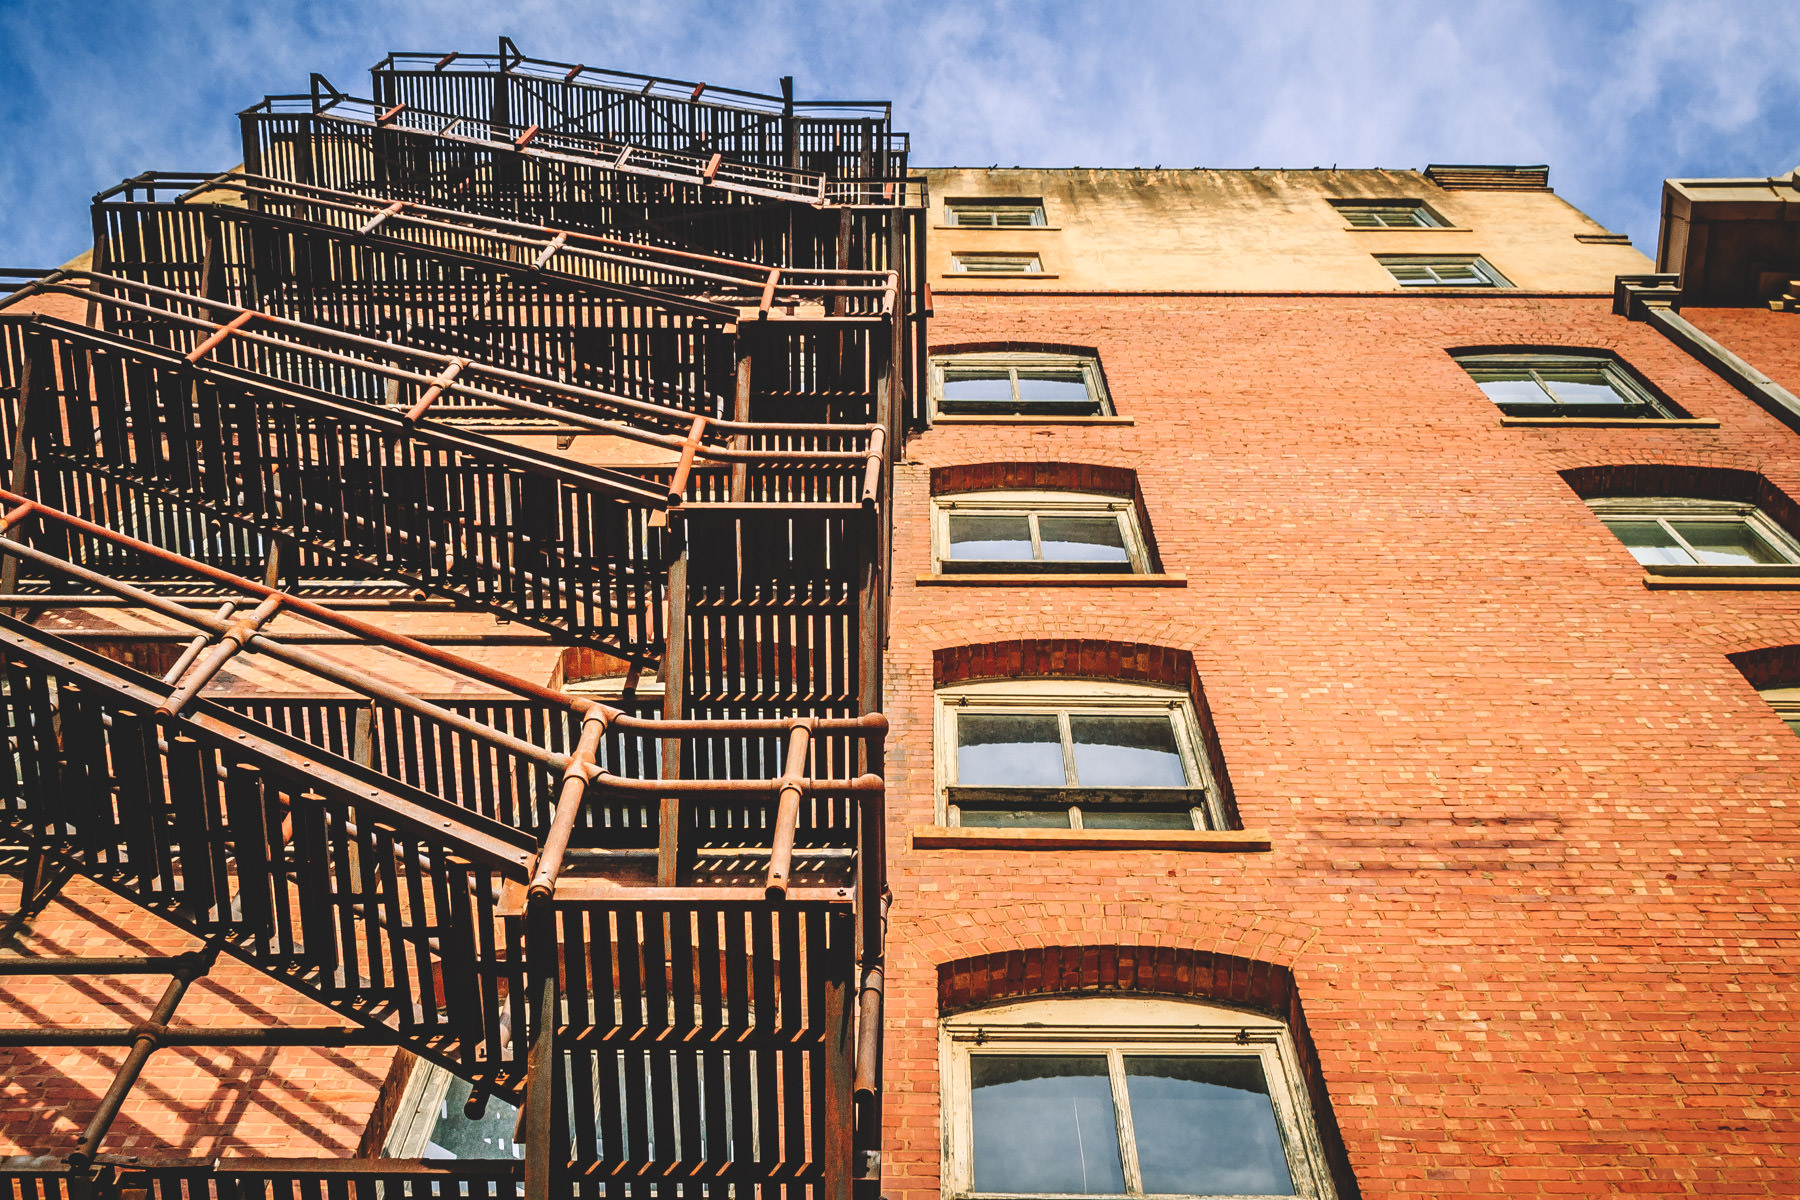 A fire escape climbs up the side of an old building in Downtown Wichita Falls, Texas.